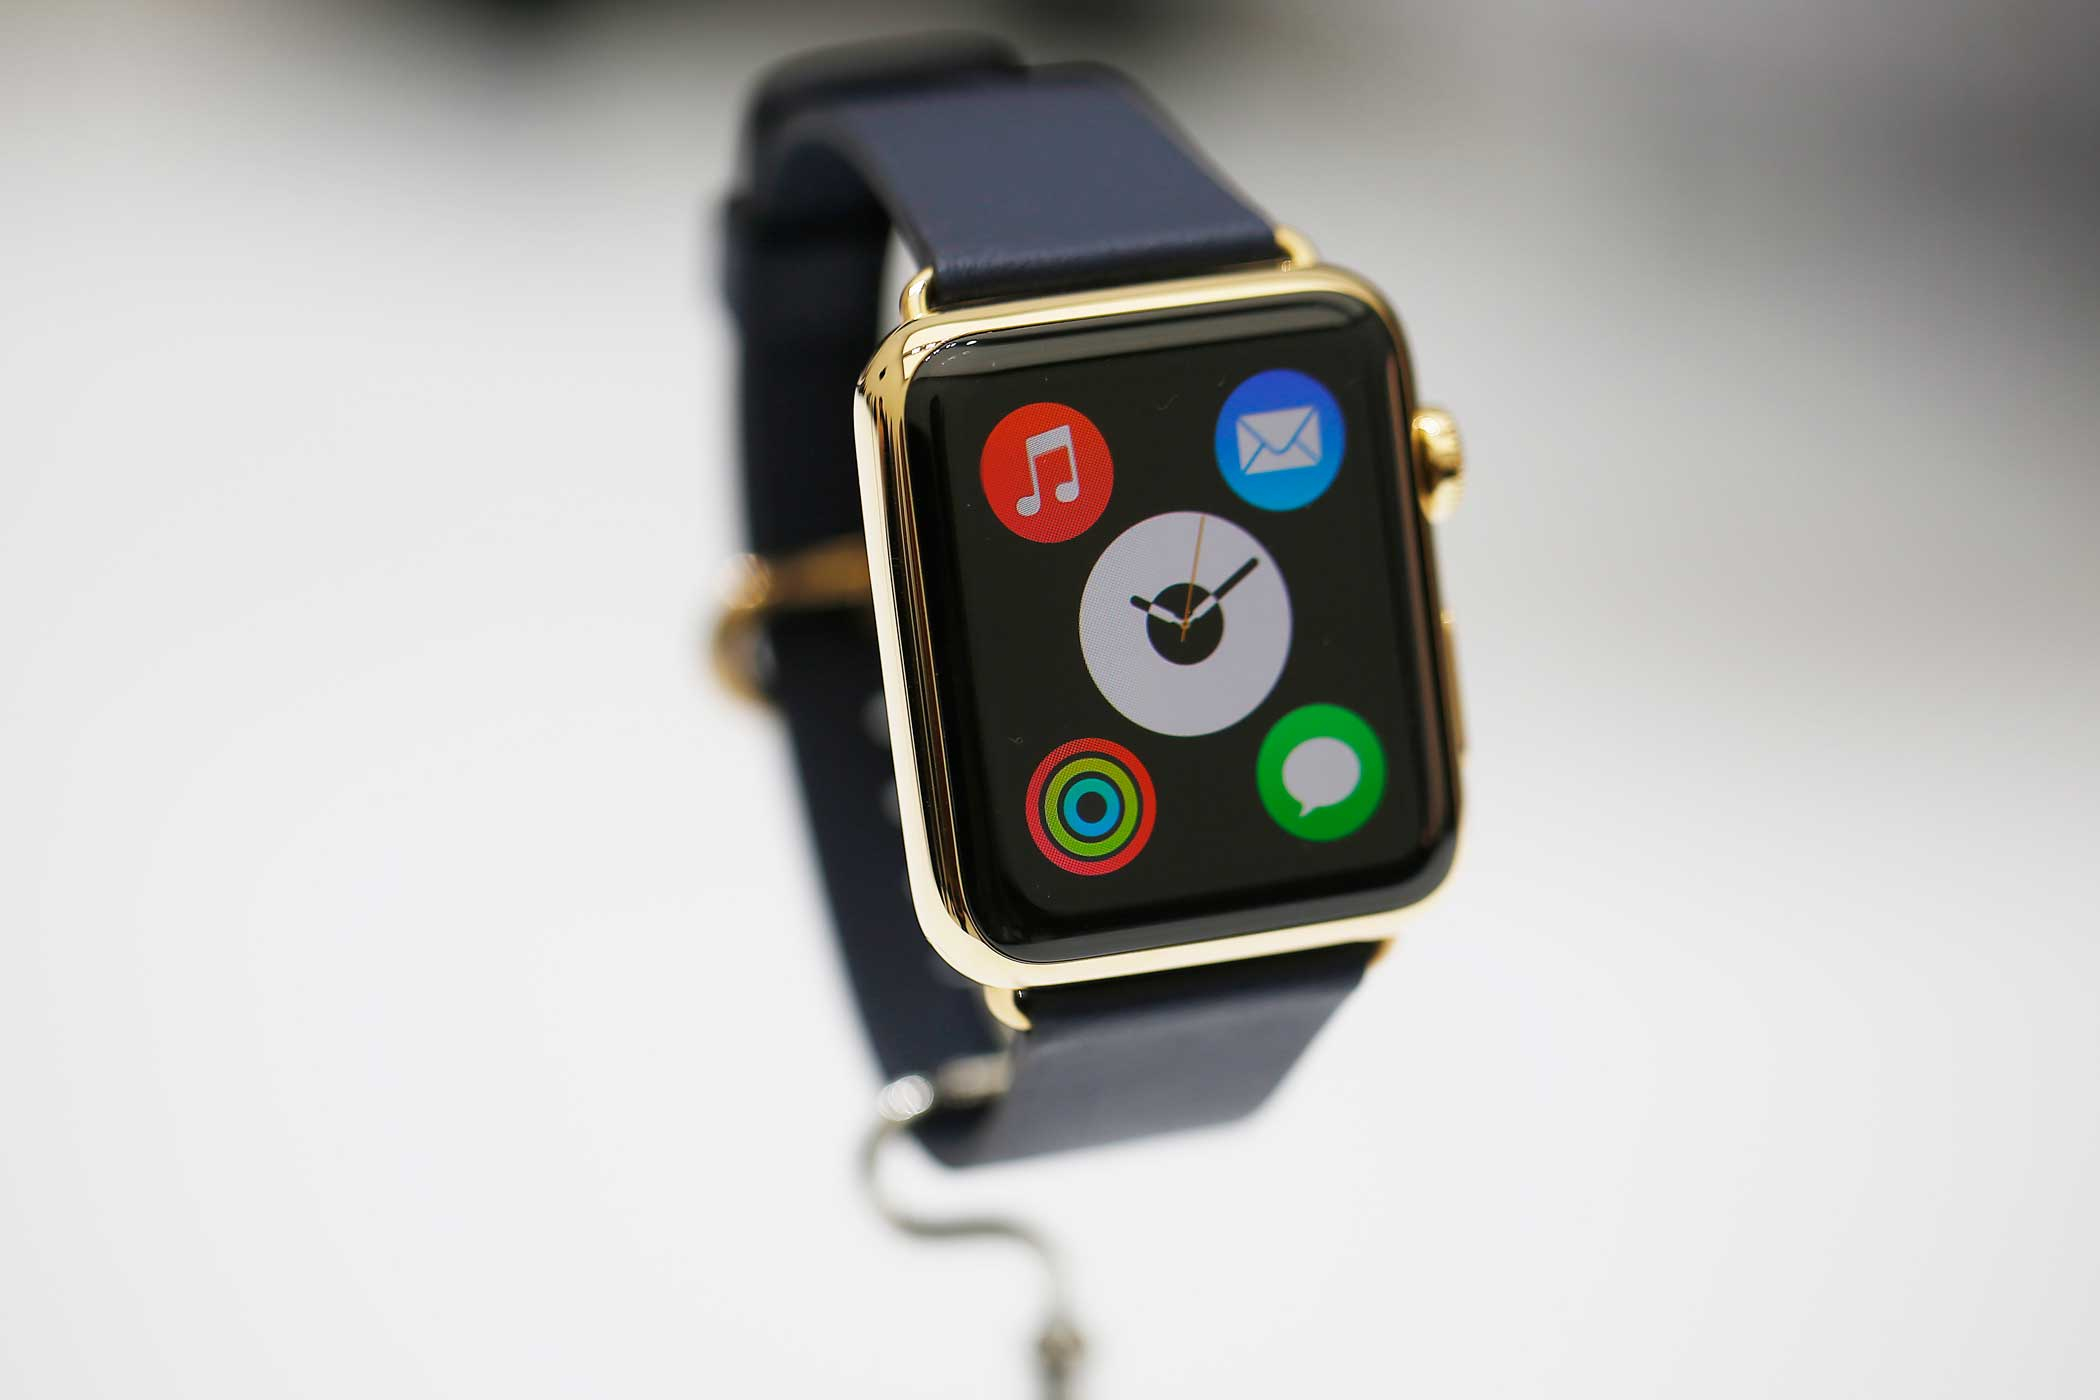 The Watch, like Apple's other iDevices, will have various independent apps. Examples include a Tesla app that shows the status of your electric car when it's charging and a Starwood app that lets the Watch act as your room key.